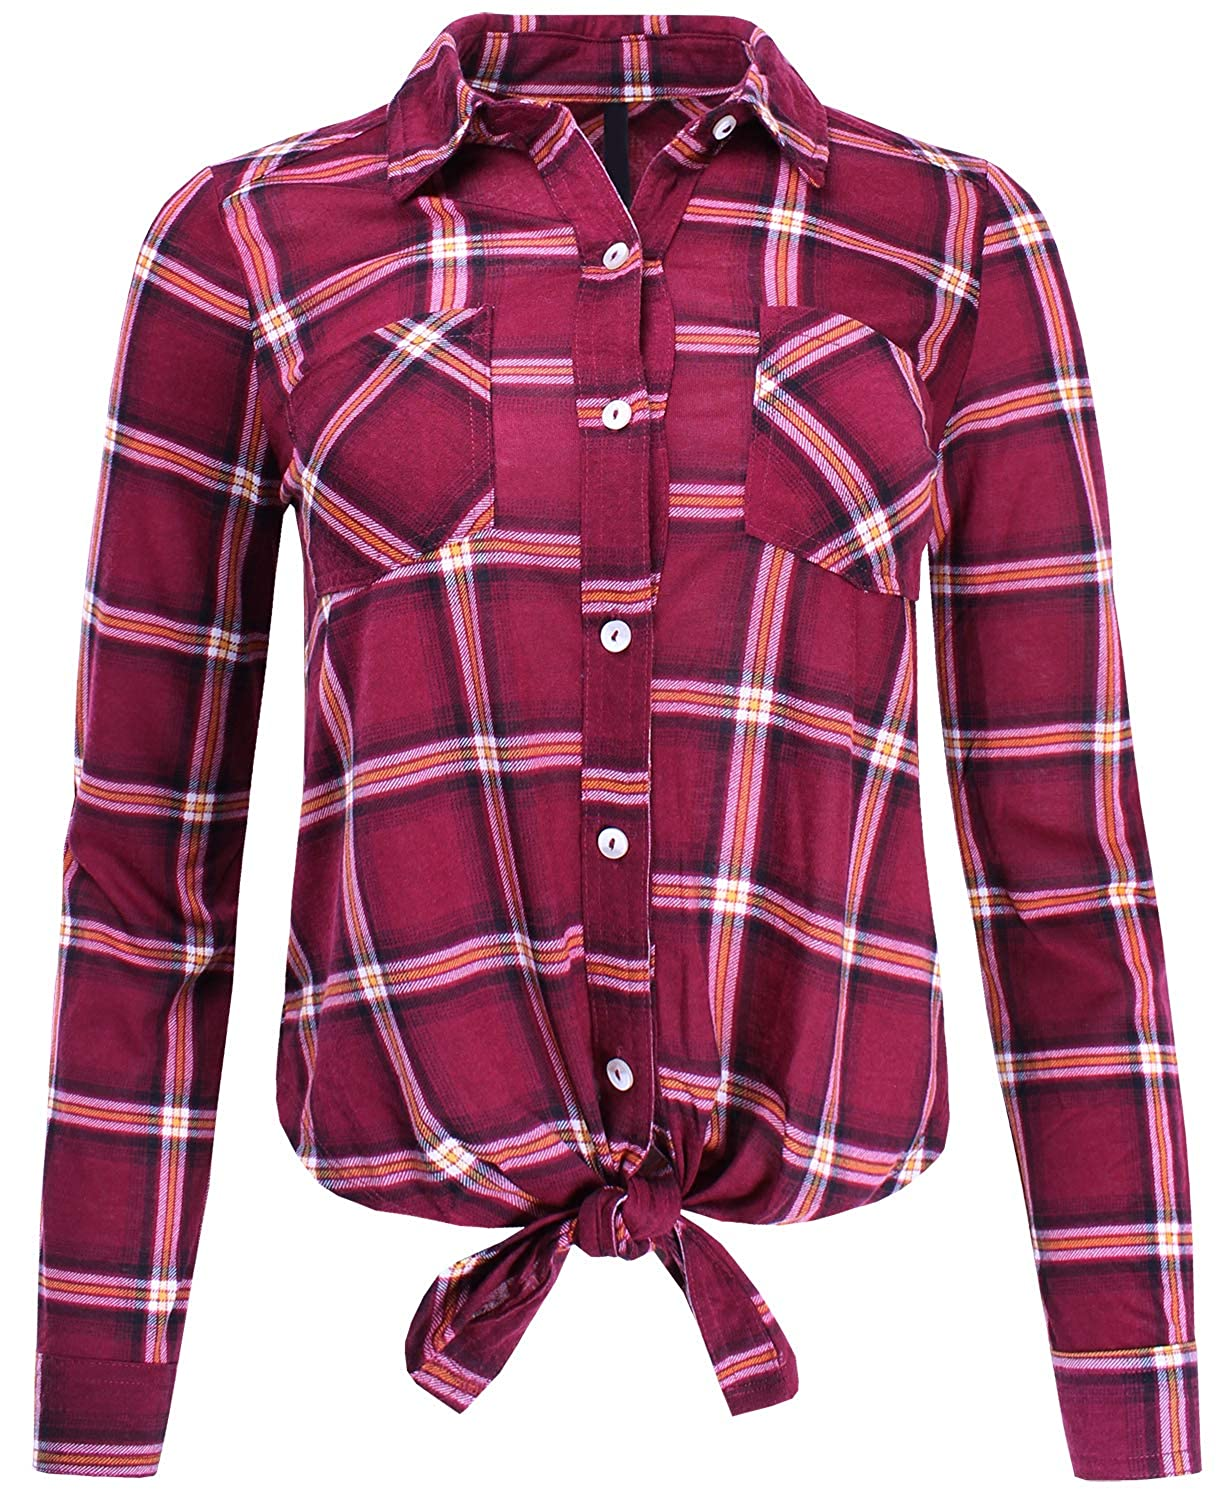 54dadd9958c0 Red Plaid Dress Shirt Tie – EDGE Engineering and Consulting Limited